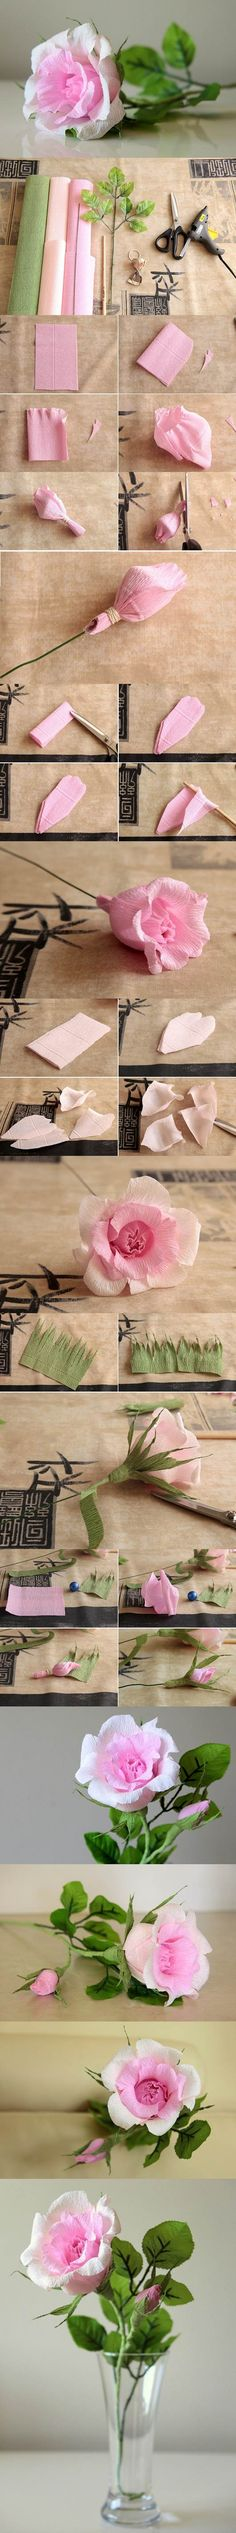 DIY Beautiful Crepe Paper Roses